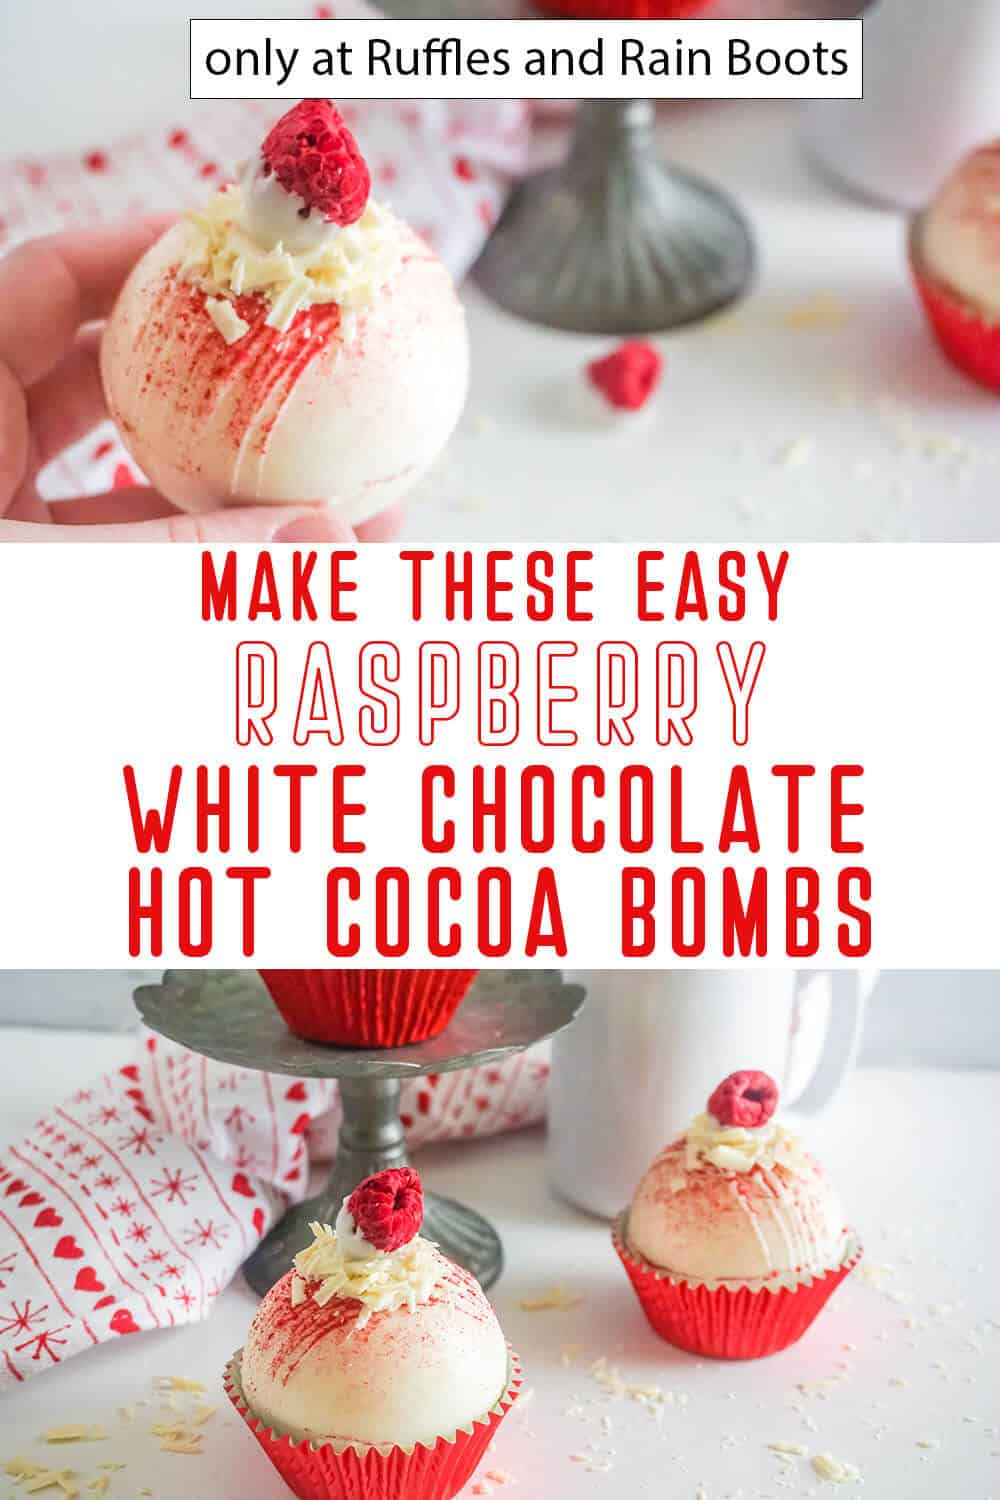 photo collage of white chocolate hot cocoa bombs with raspberry with text which reads make these easy raspberry white chocolate hot cocoa bombs